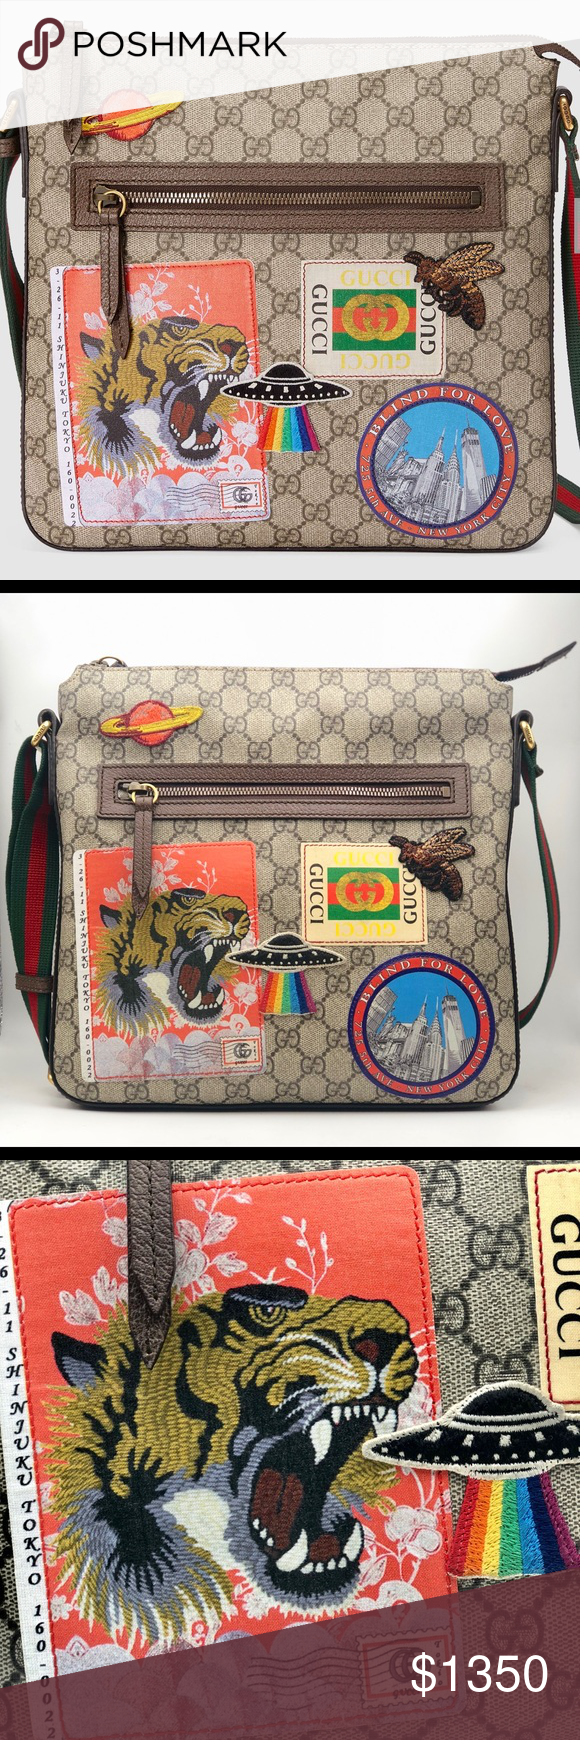 f6271118b61 Gucci Courrier soft GG Supreme messenger The appliqués are individually  embroidered and then skillfully hand-